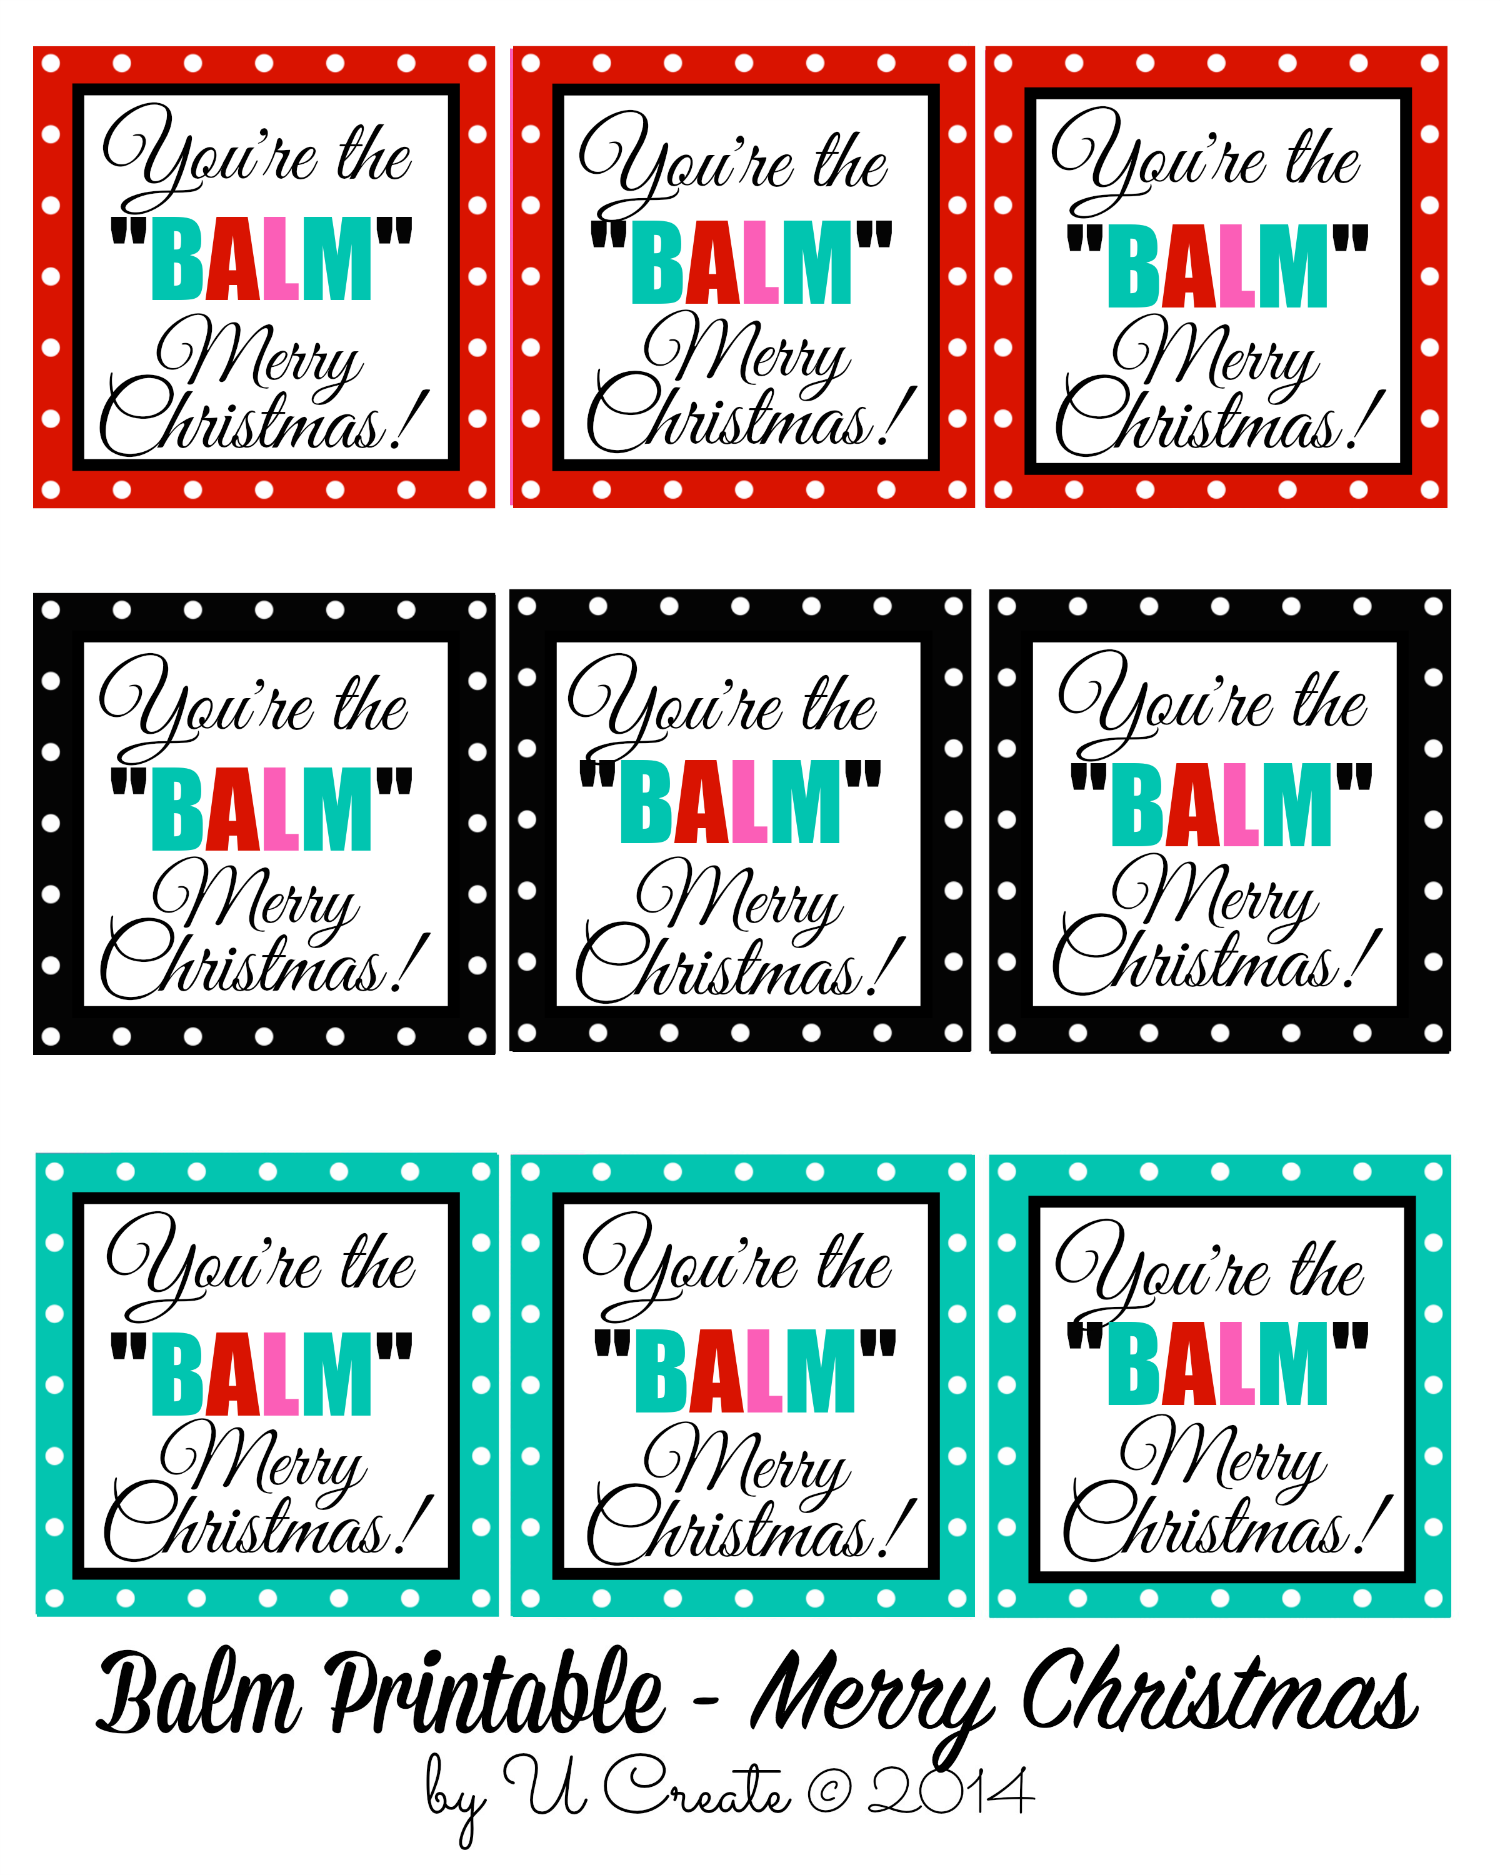 image about You're the Balm Free Printable named Youre the BALM - Xmas Printables - U Establish